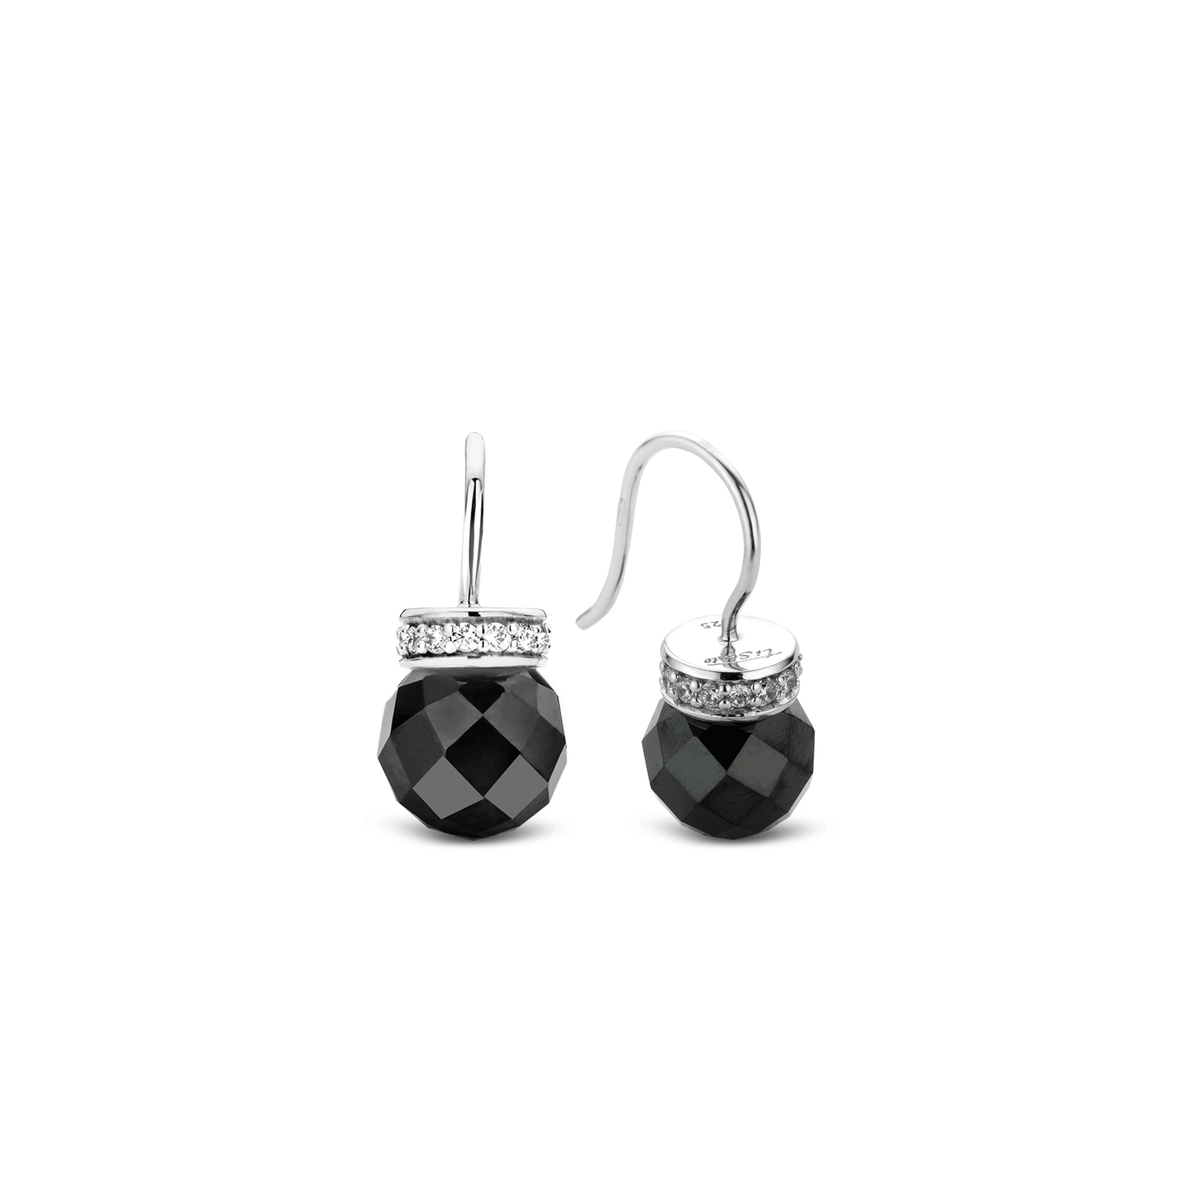 TI SENTO - Milano Earrings 7528ZB